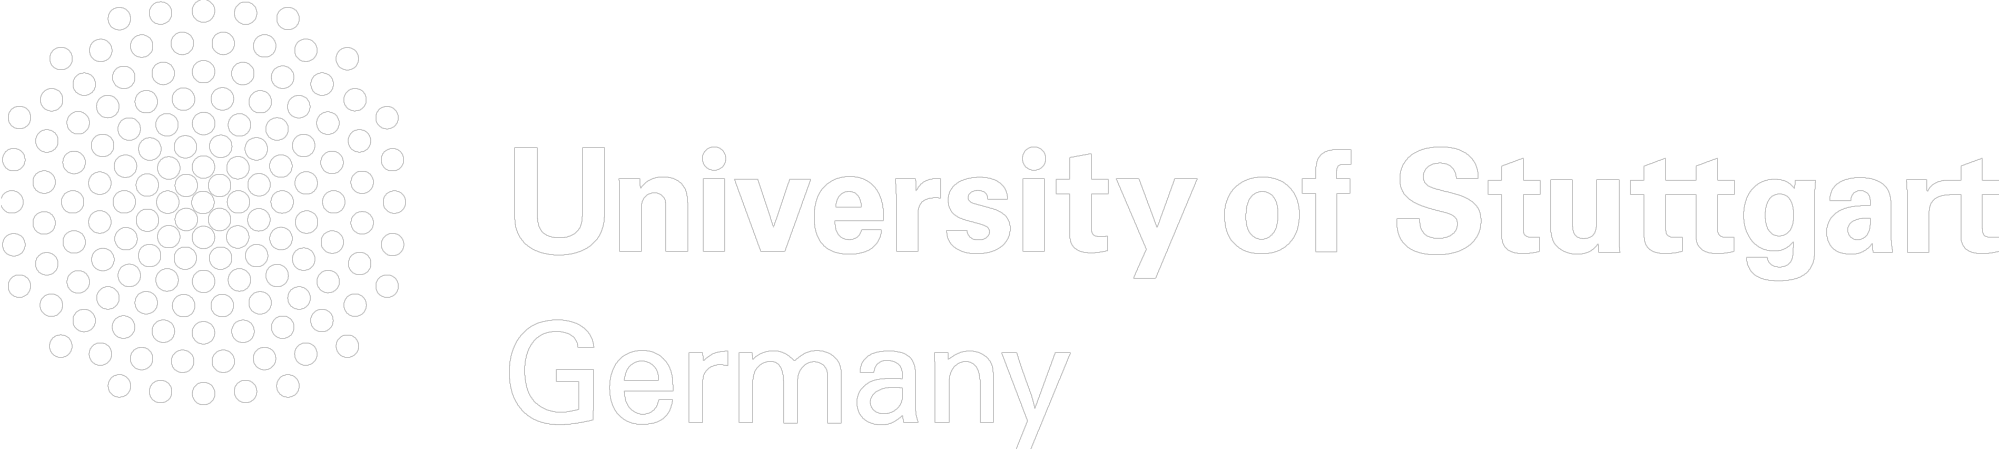 University of Stuttgart Logo